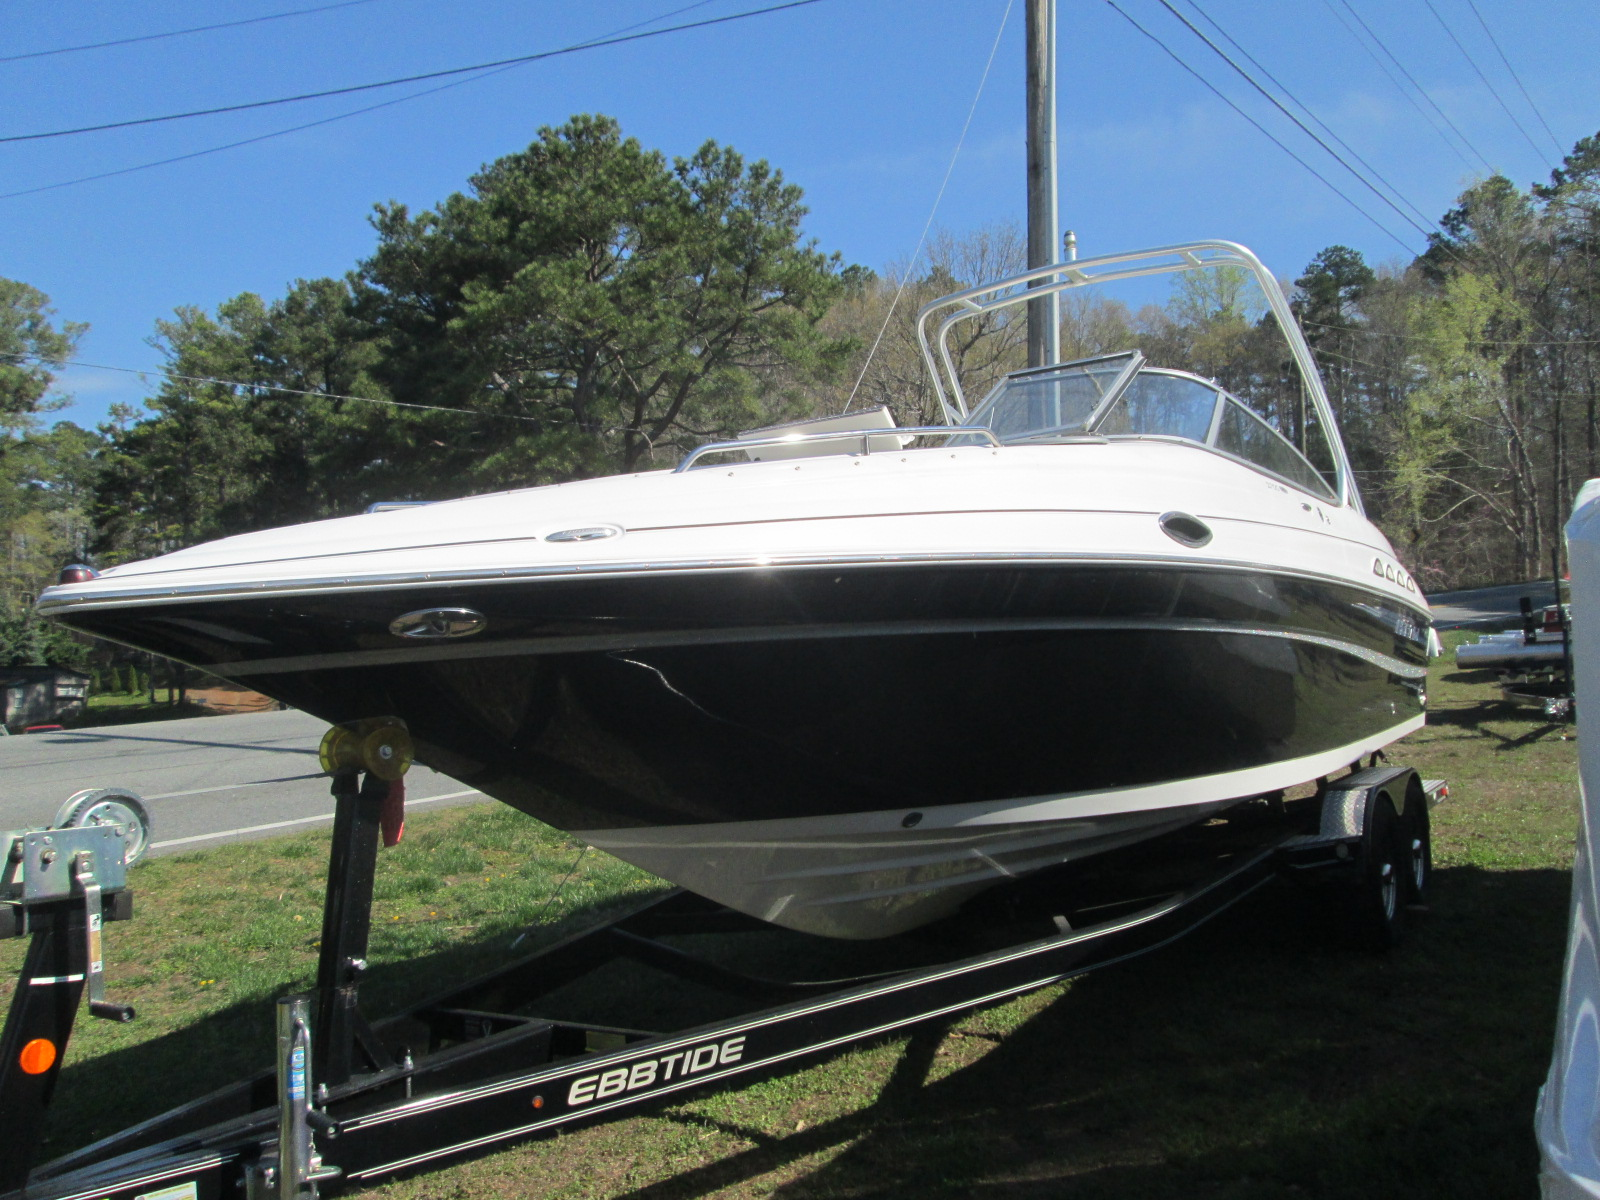 Page 42 of 120 - Page 42 of 120 - Boats for Sale ...